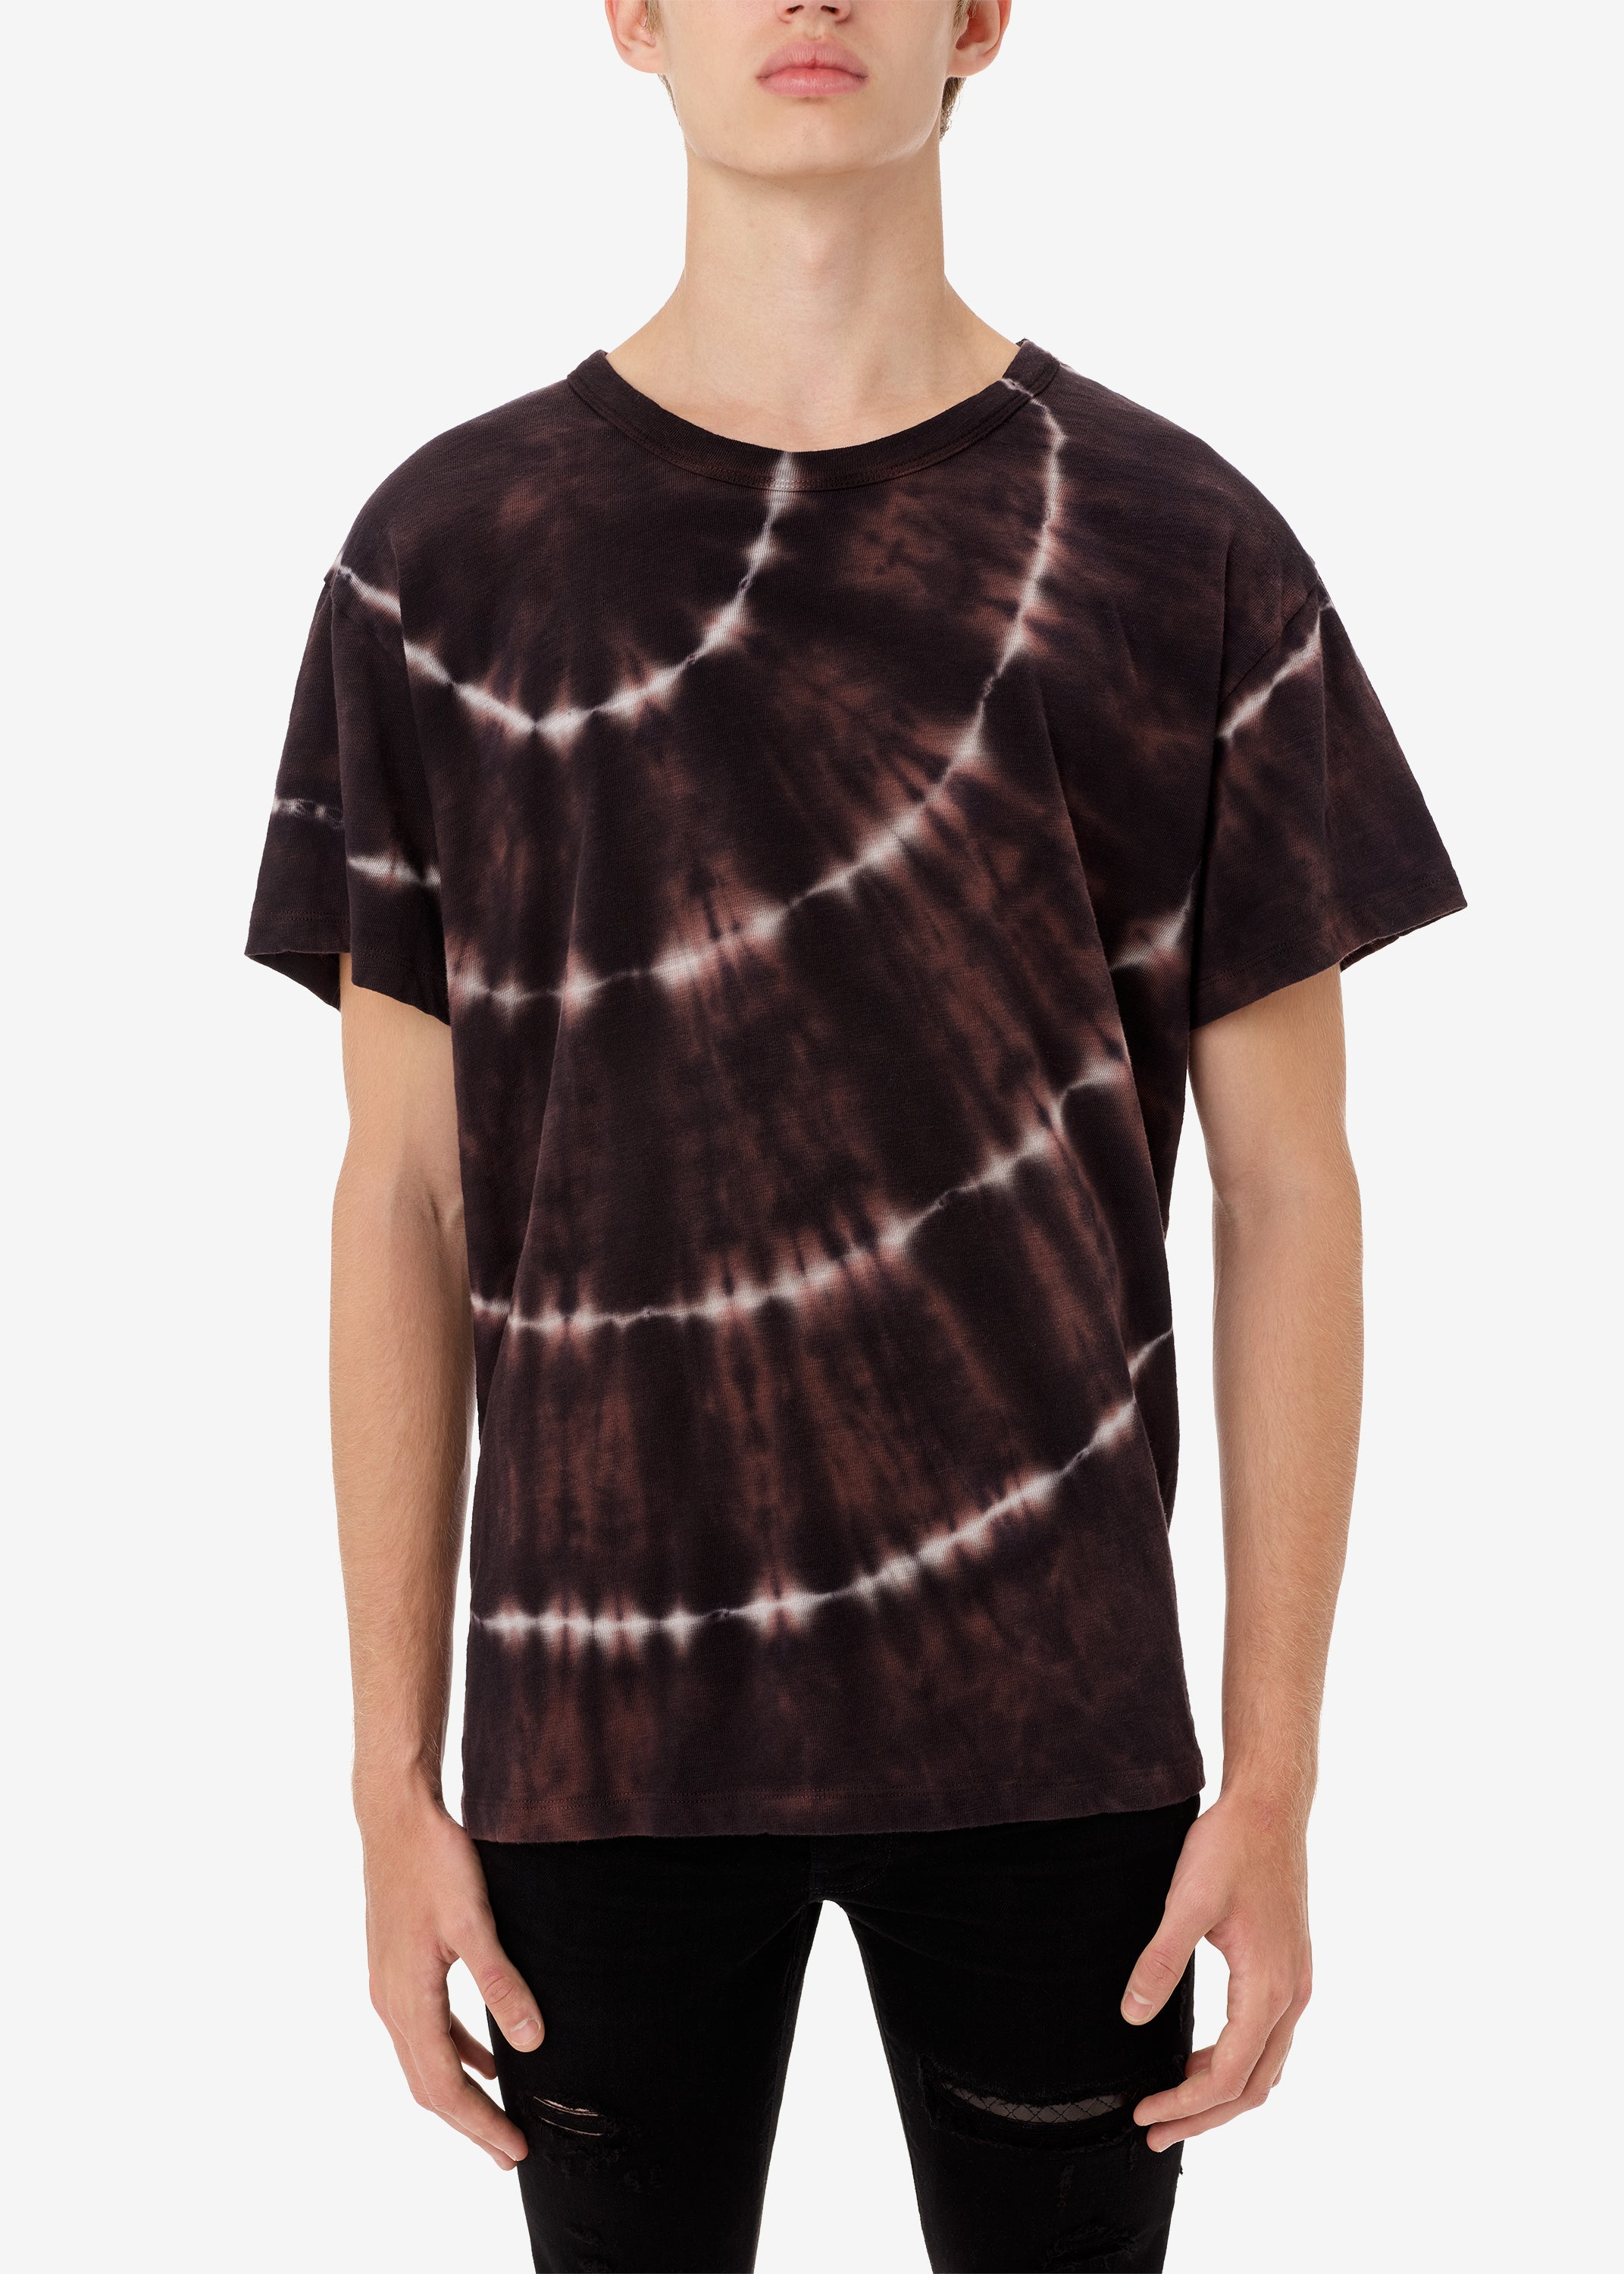 exclusive-tie-dye-tee-multi-color-image-1